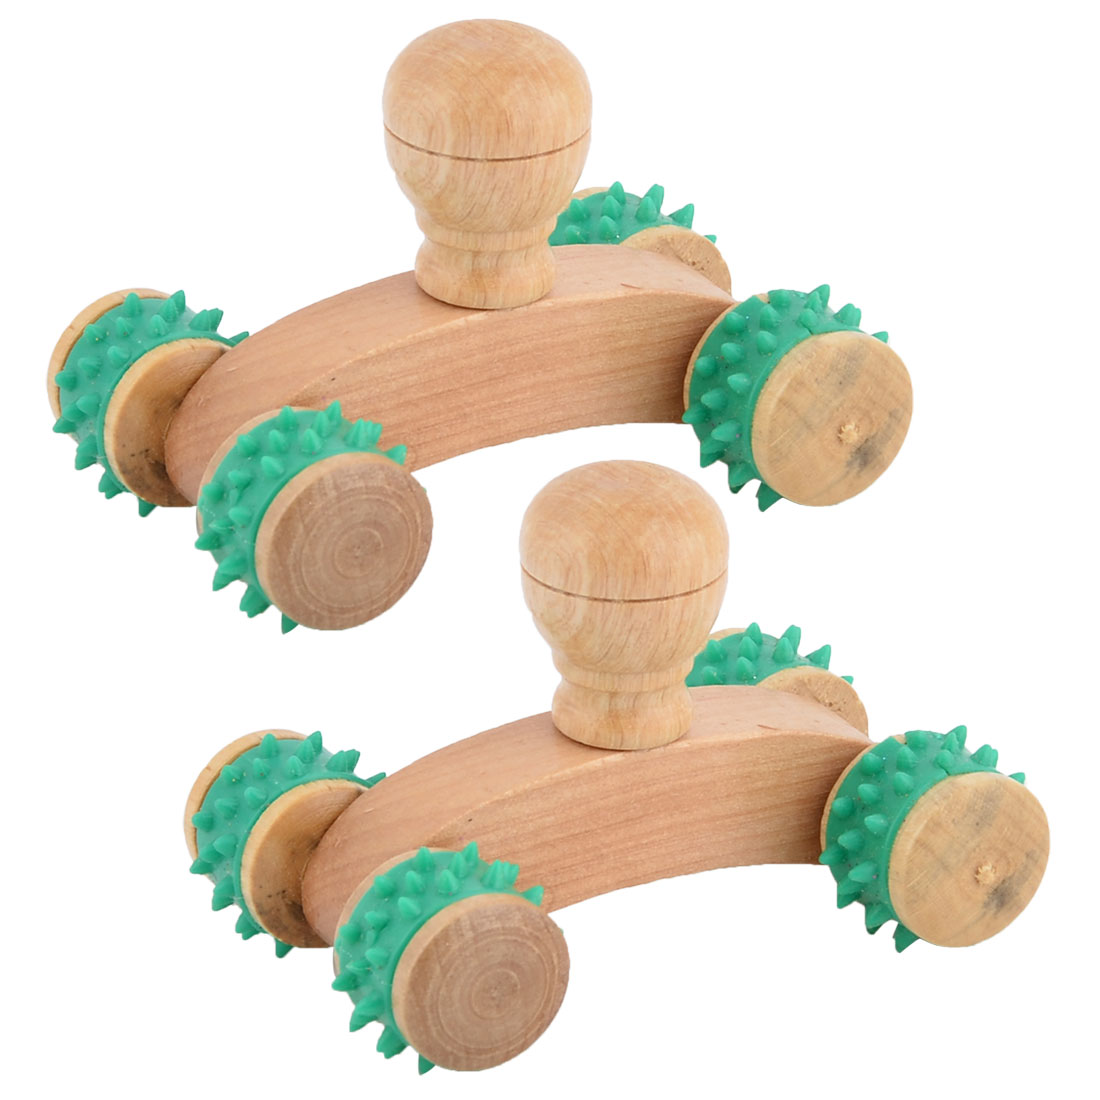 Unique BargainsHome Wooden Portable Stress Relief Body Neck Muscle Massage Roller Green 2pcs